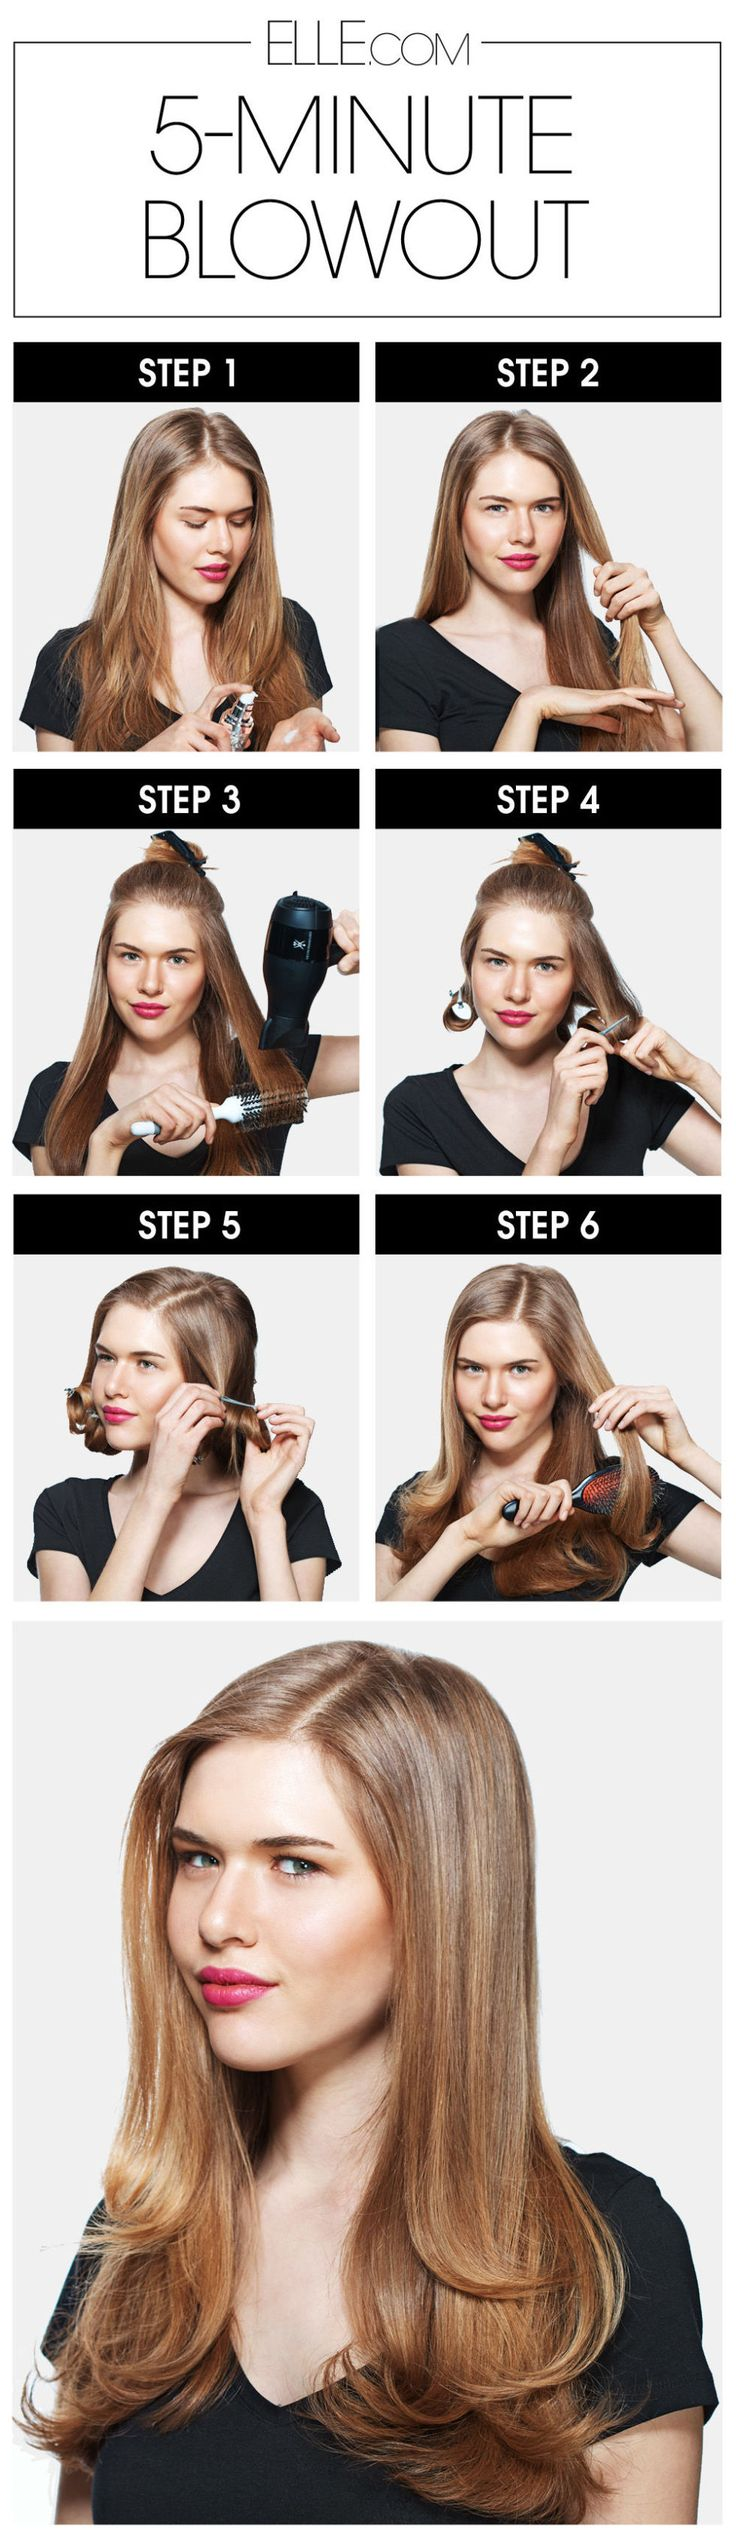 Blowout Hair in 5 Minutes - How to Master the Perfect Blowout - ELLE